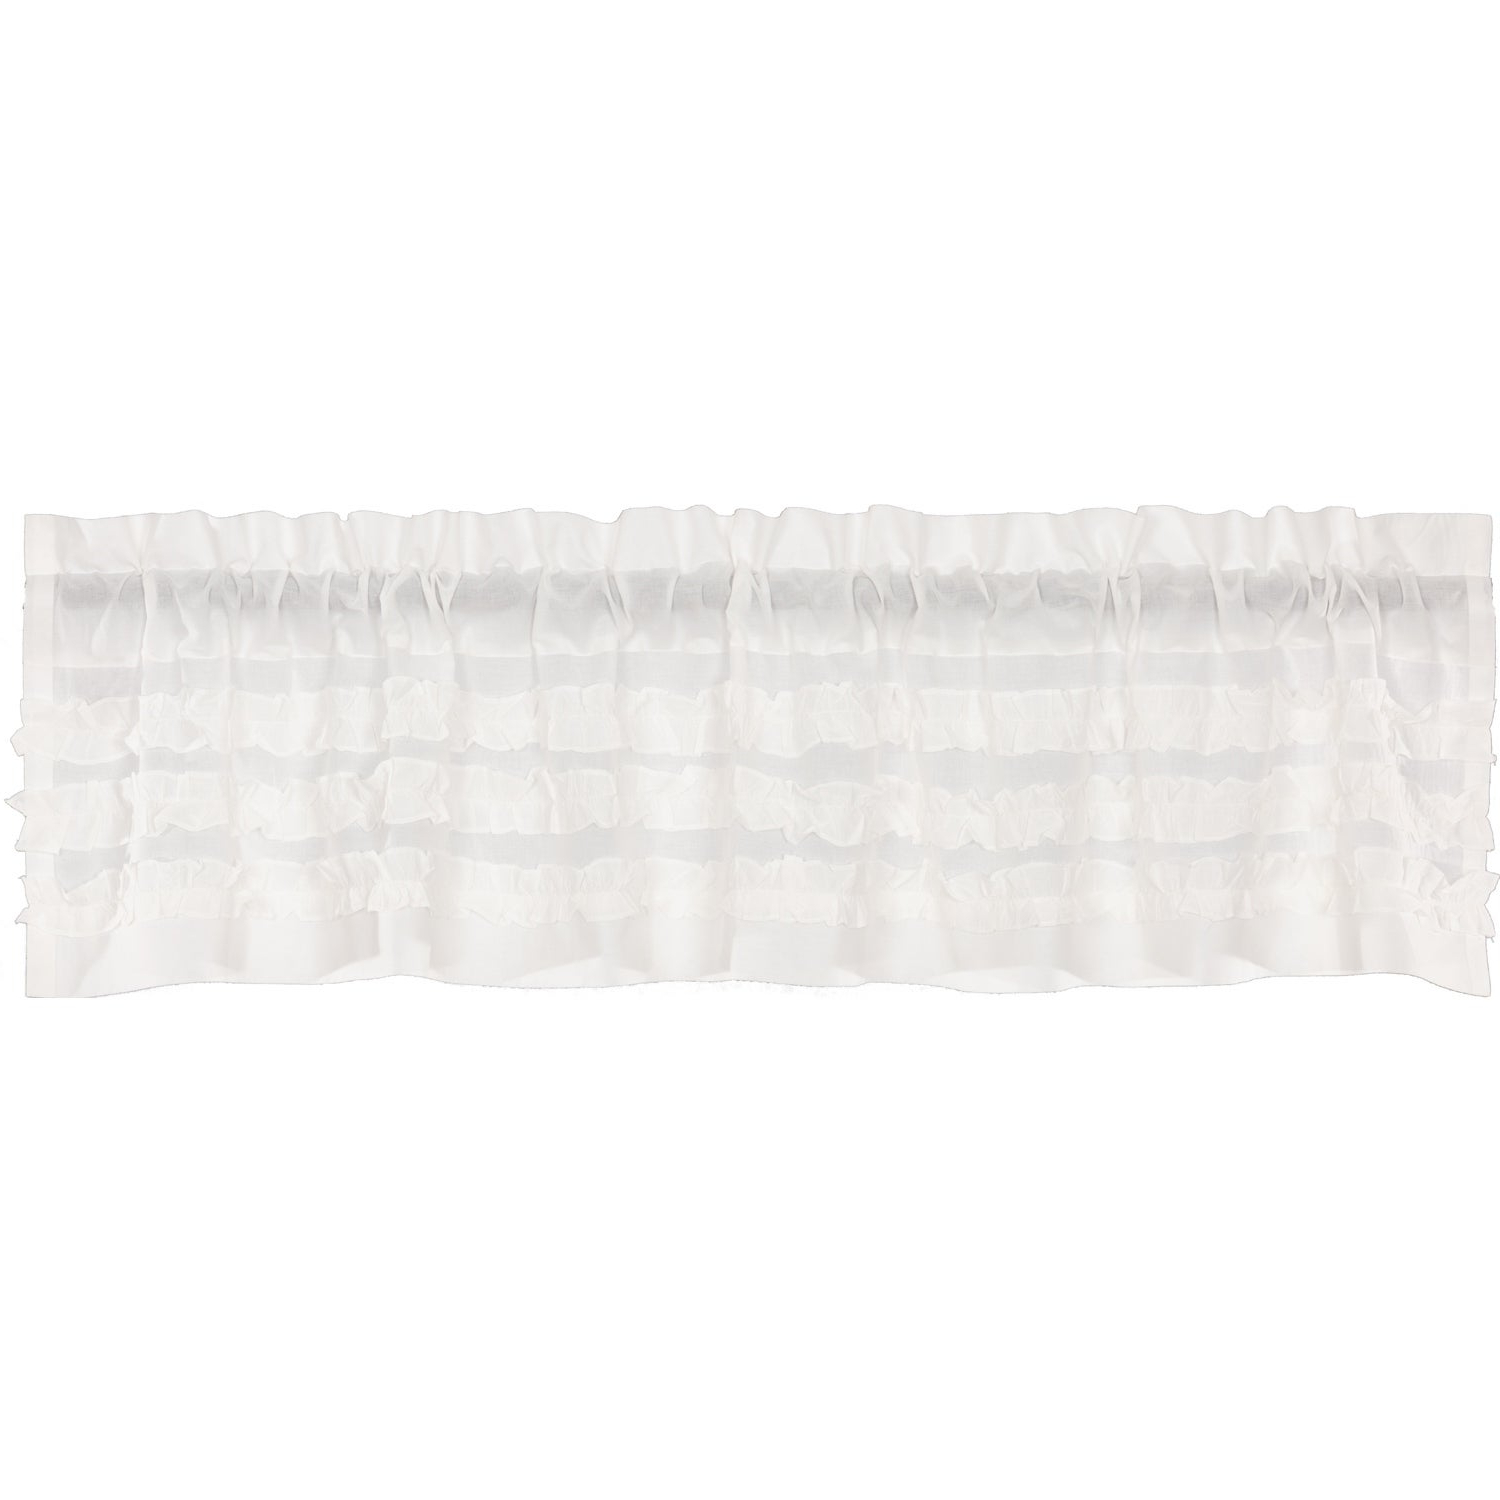 White Farmhouse Kitchen Curtains Vhc White Ruffled Sheer Petticoat Valance Rod Pocket Cotton Solid Color Ruched Ruffle With Well Known Rod Pocket Cotton Solid Color Ruched Ruffle Kitchen Curtains (View 3 of 20)